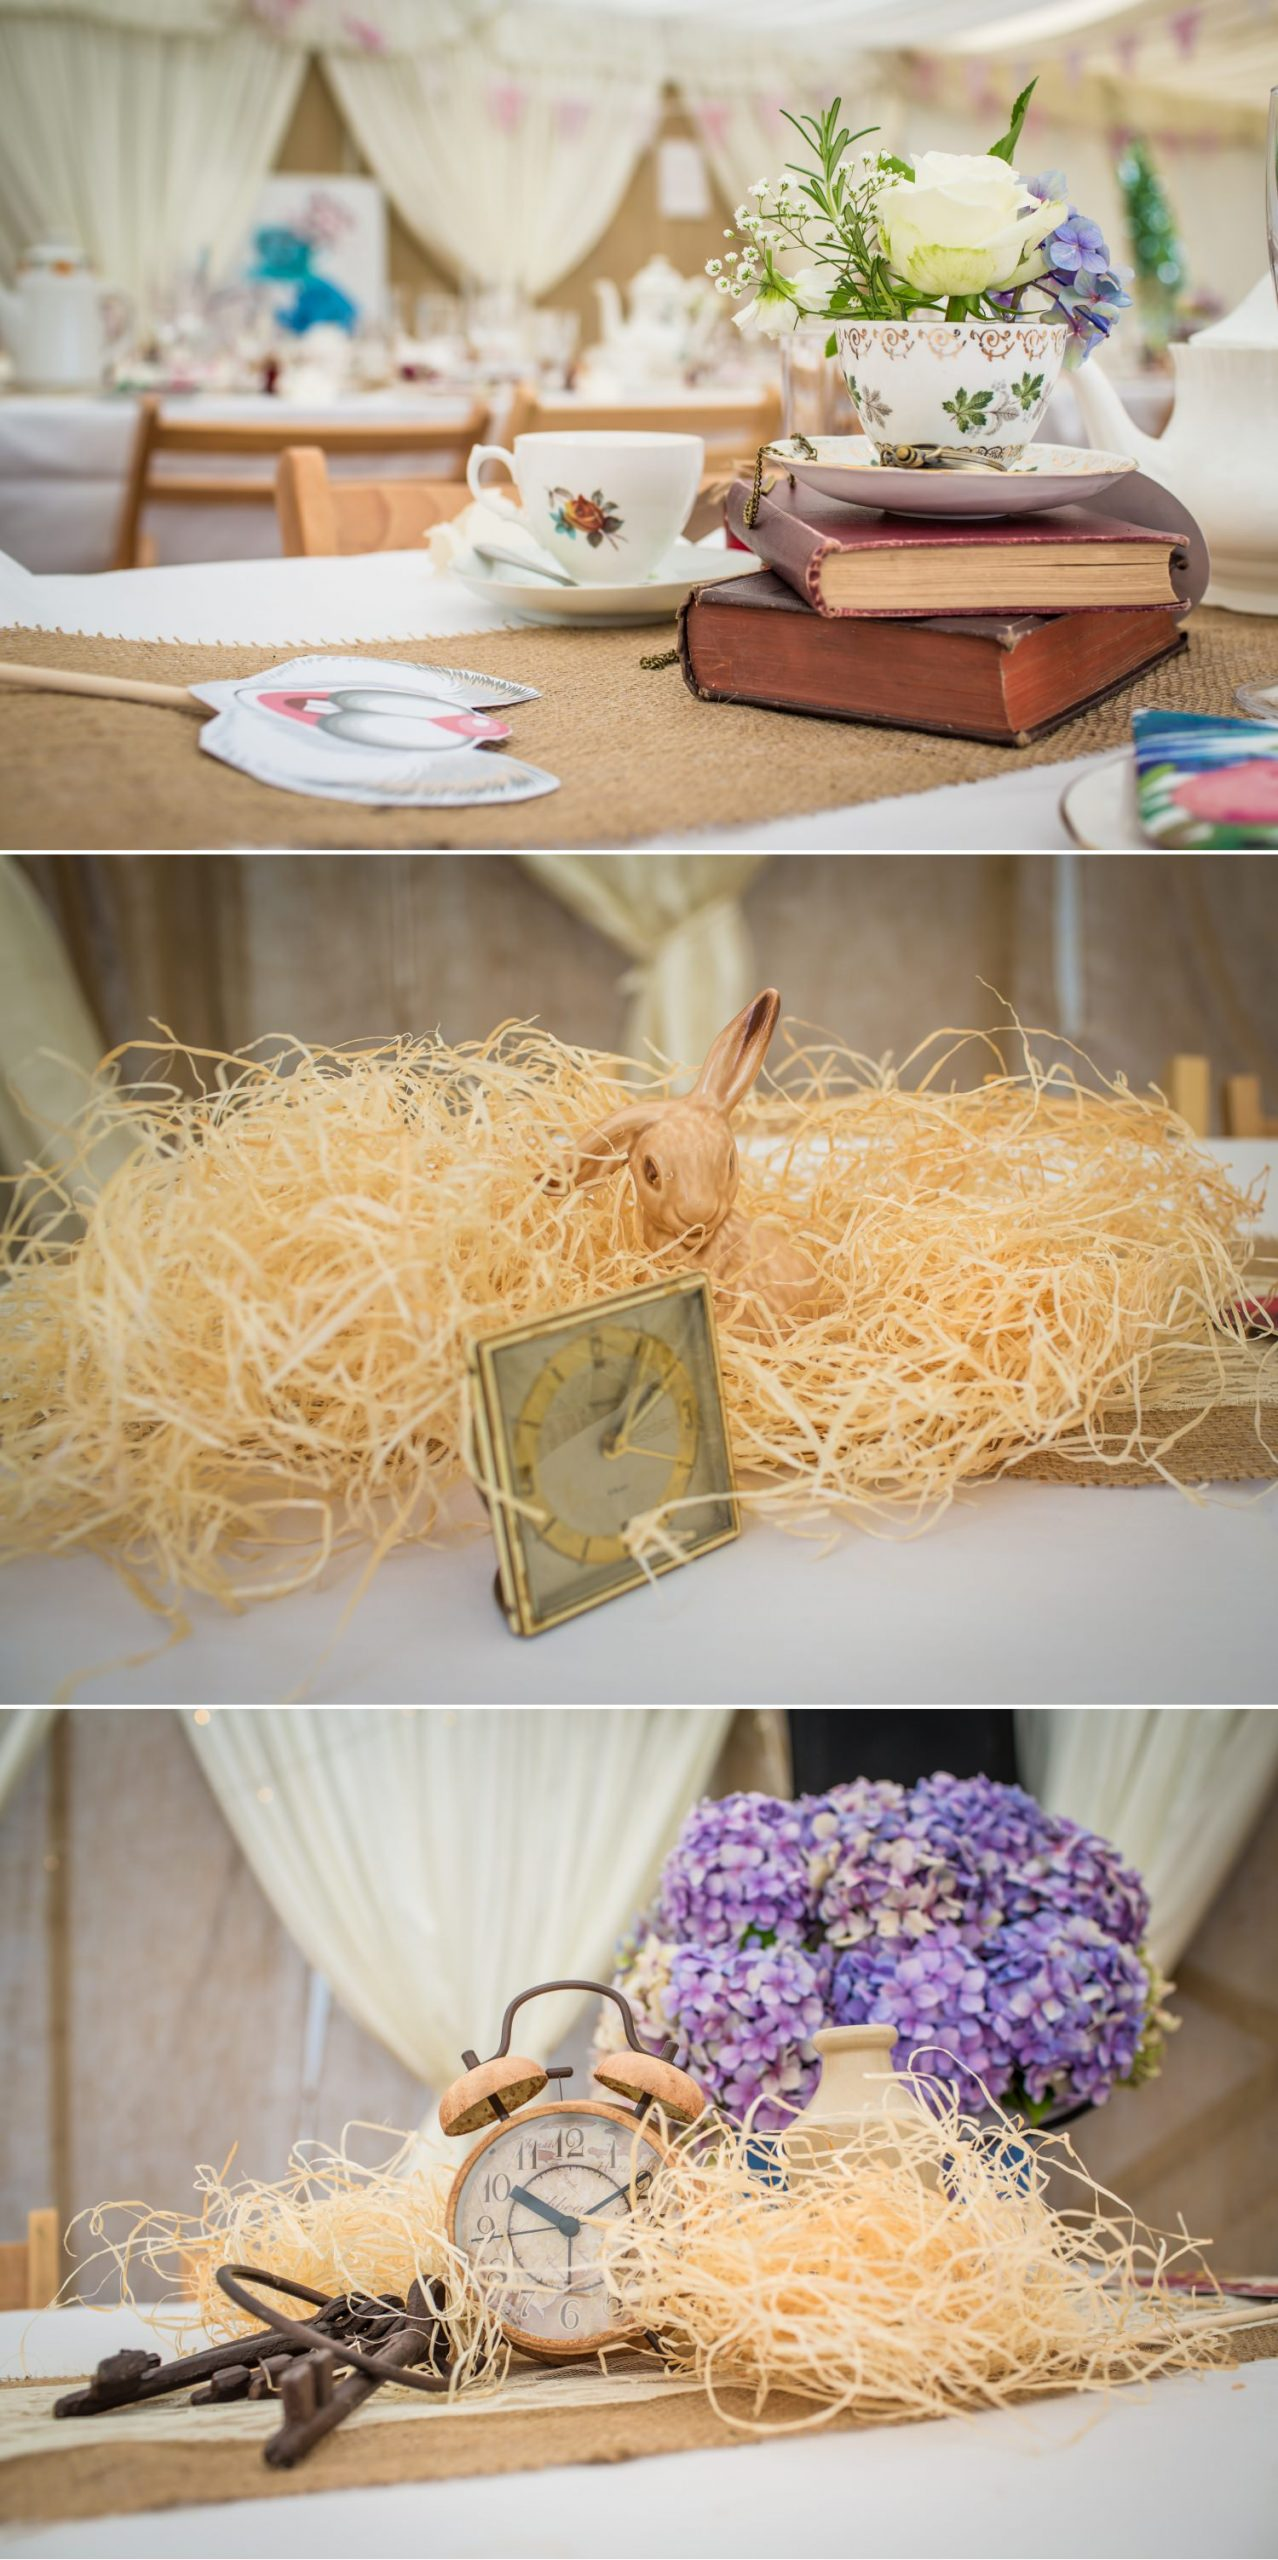 Wedding table decorations of bunnies and clocks